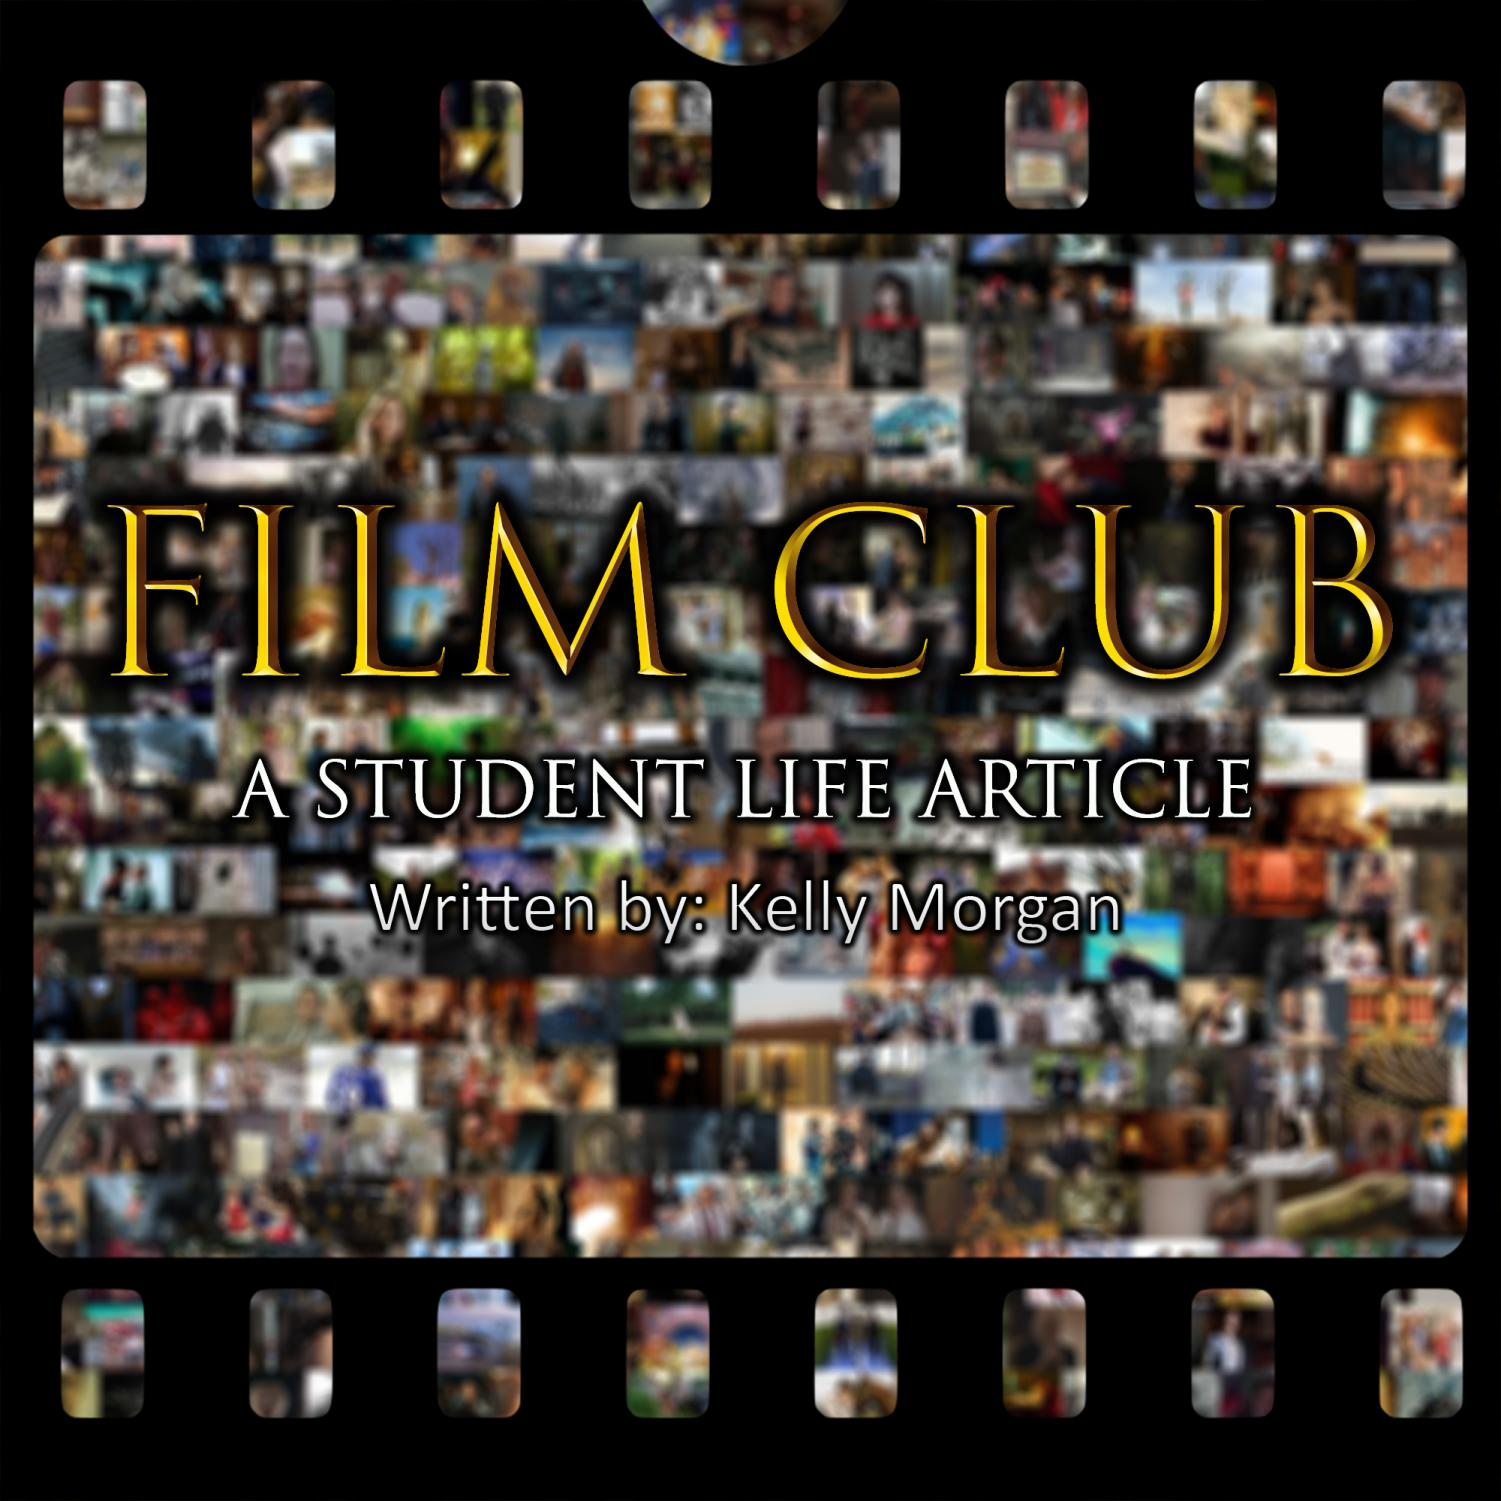 Film club, now entering its second year, is a chance for students to explore cinematography.